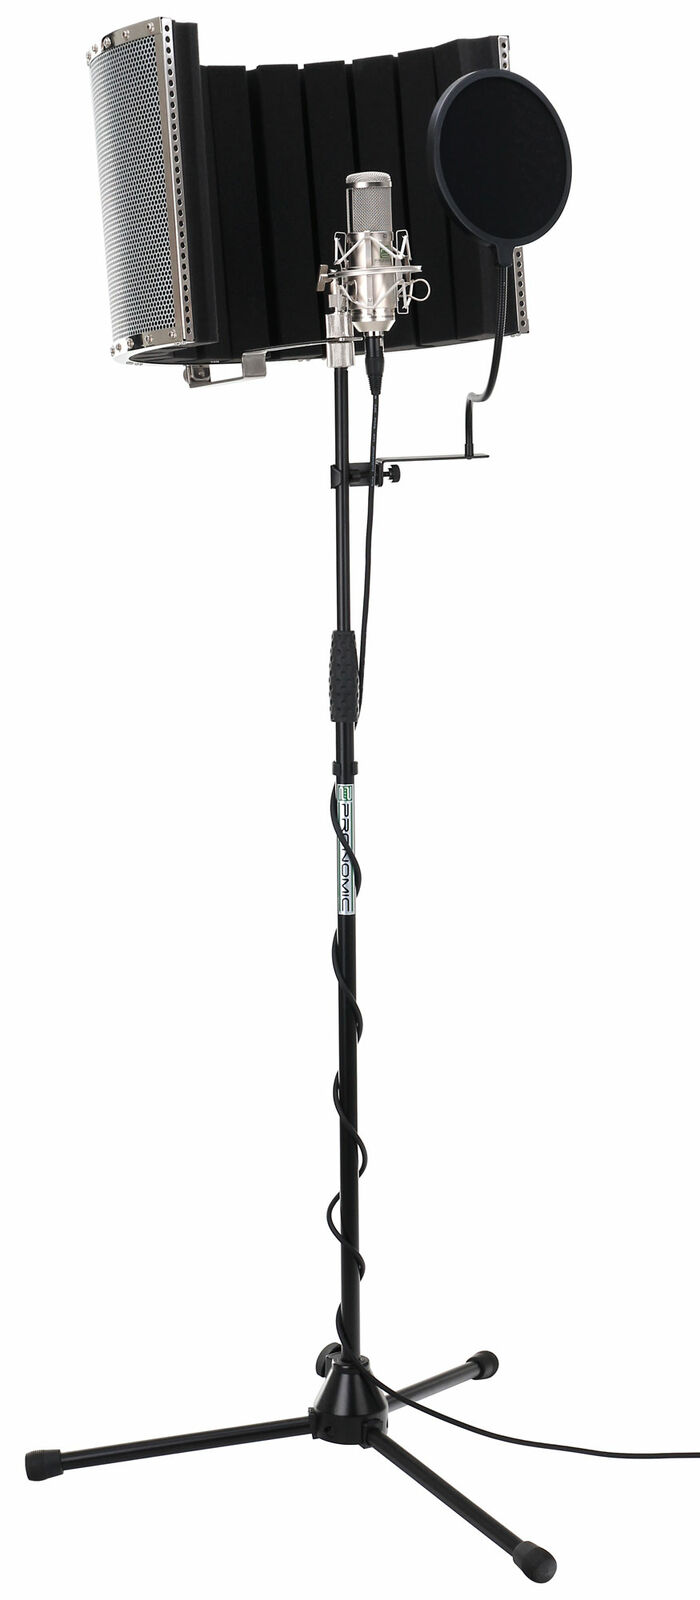 CONDENSER STUDIO MICROPHONE SUPPORT STAND XLR CABLE ANTIPOP SCREEN ABSORBER SET